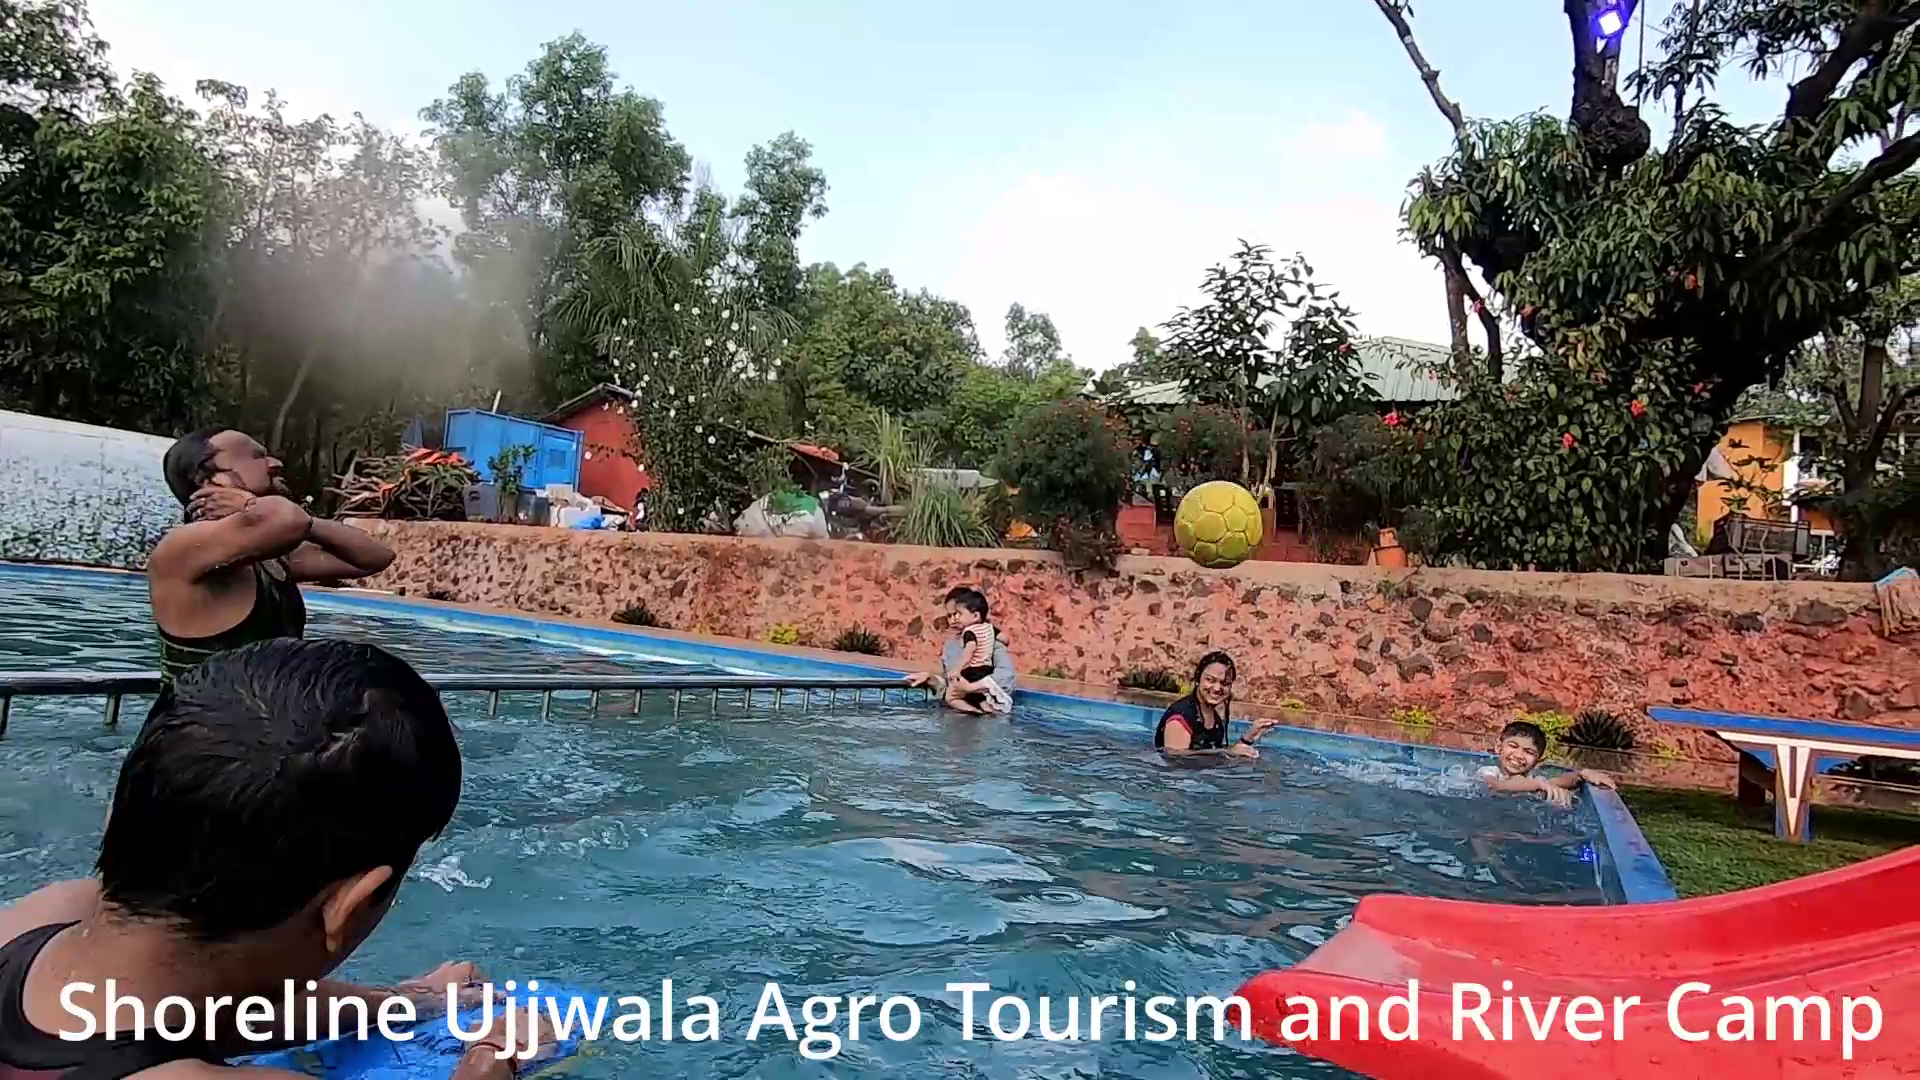 swimming pool tapola - Shoreline Ujjwala Agro Tourism and River Camp